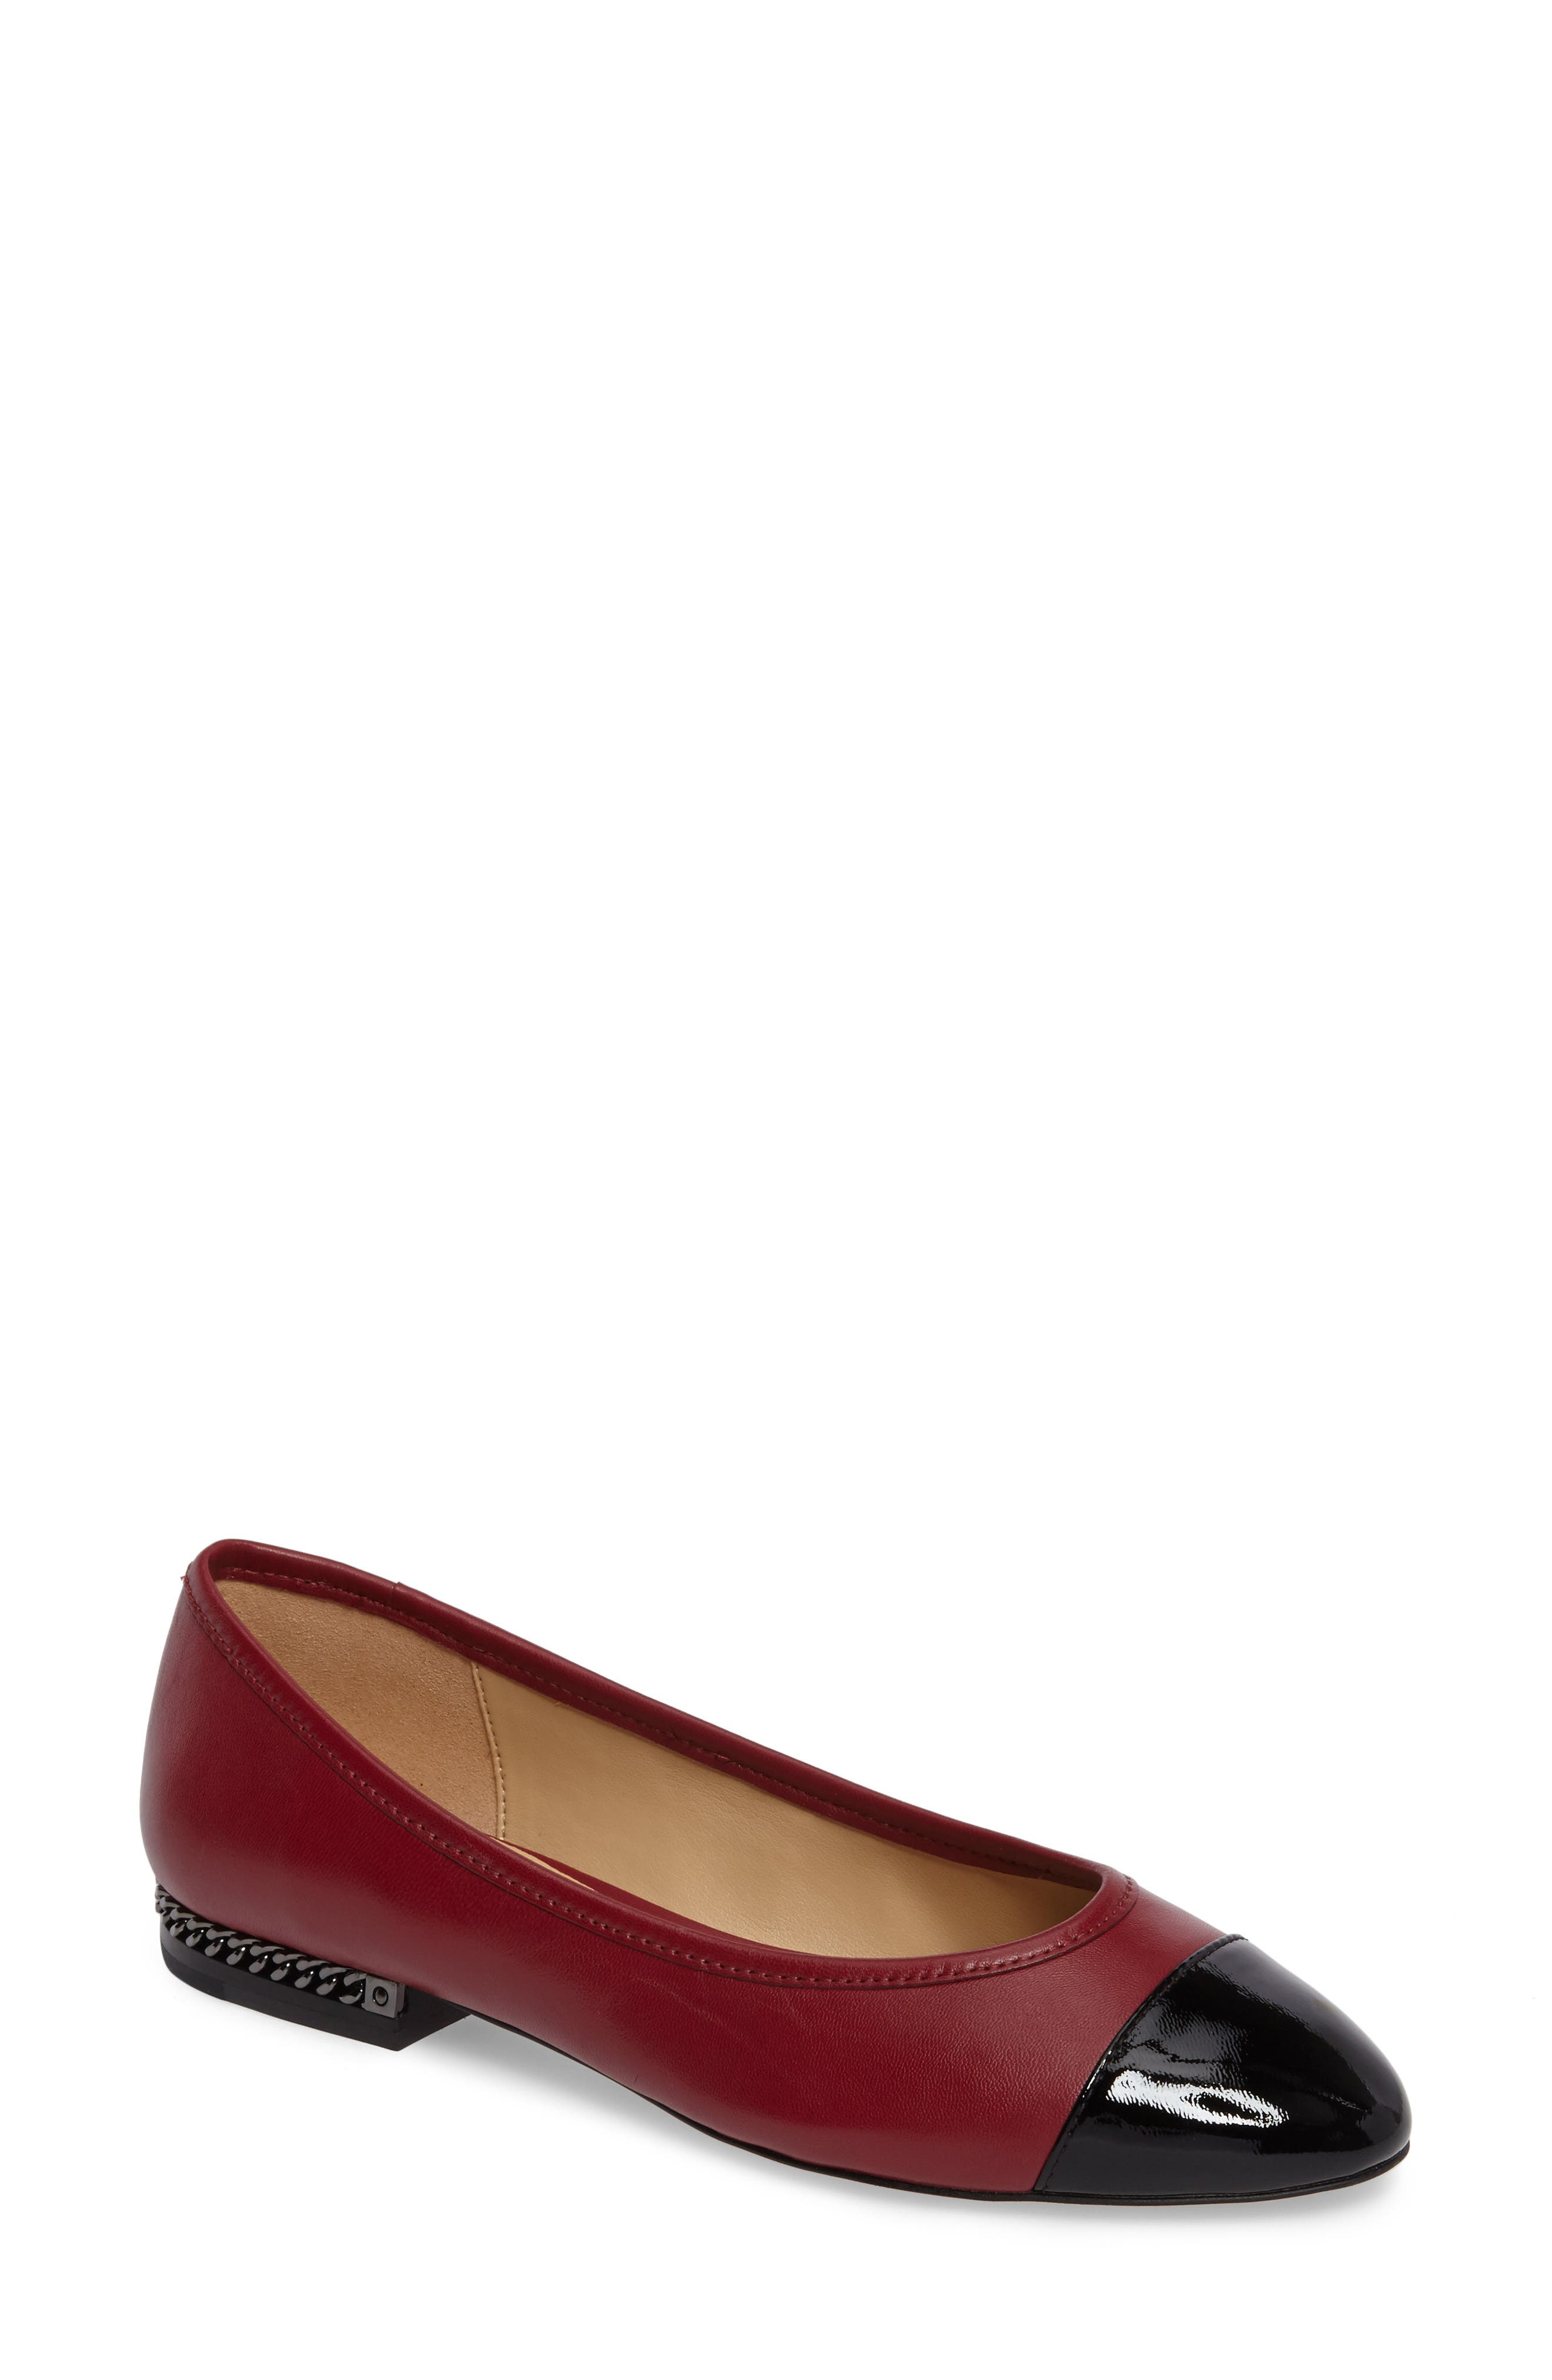 'Sabrina' Ballet Flat,                             Main thumbnail 1, color,                             Mulberry Patent Leather